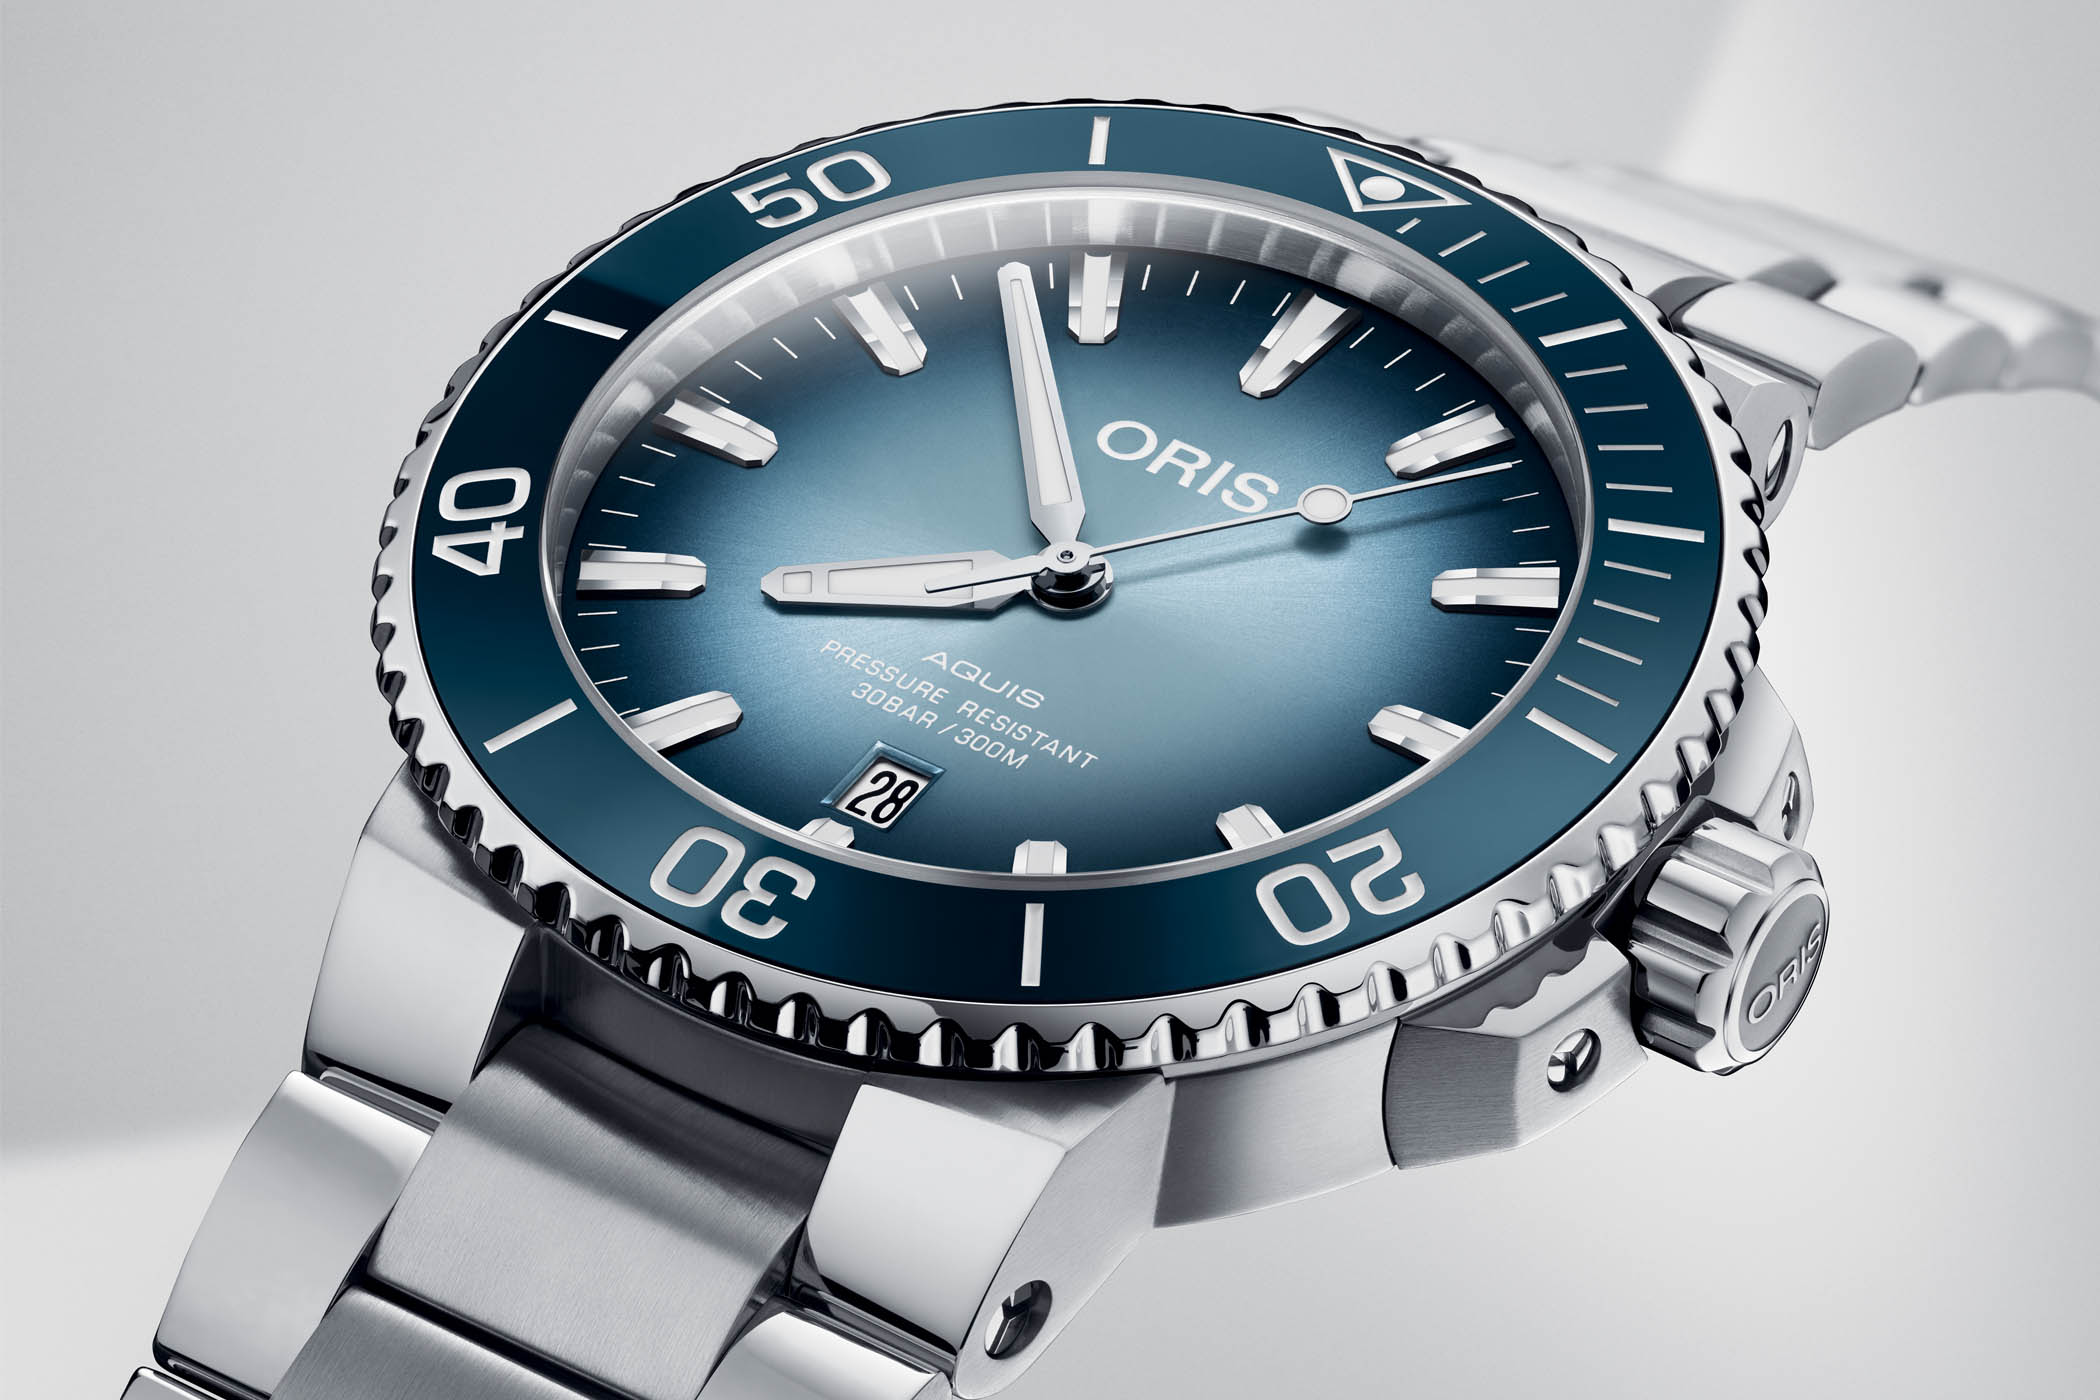 Oris Aquis Lake Baikal Limited Edition